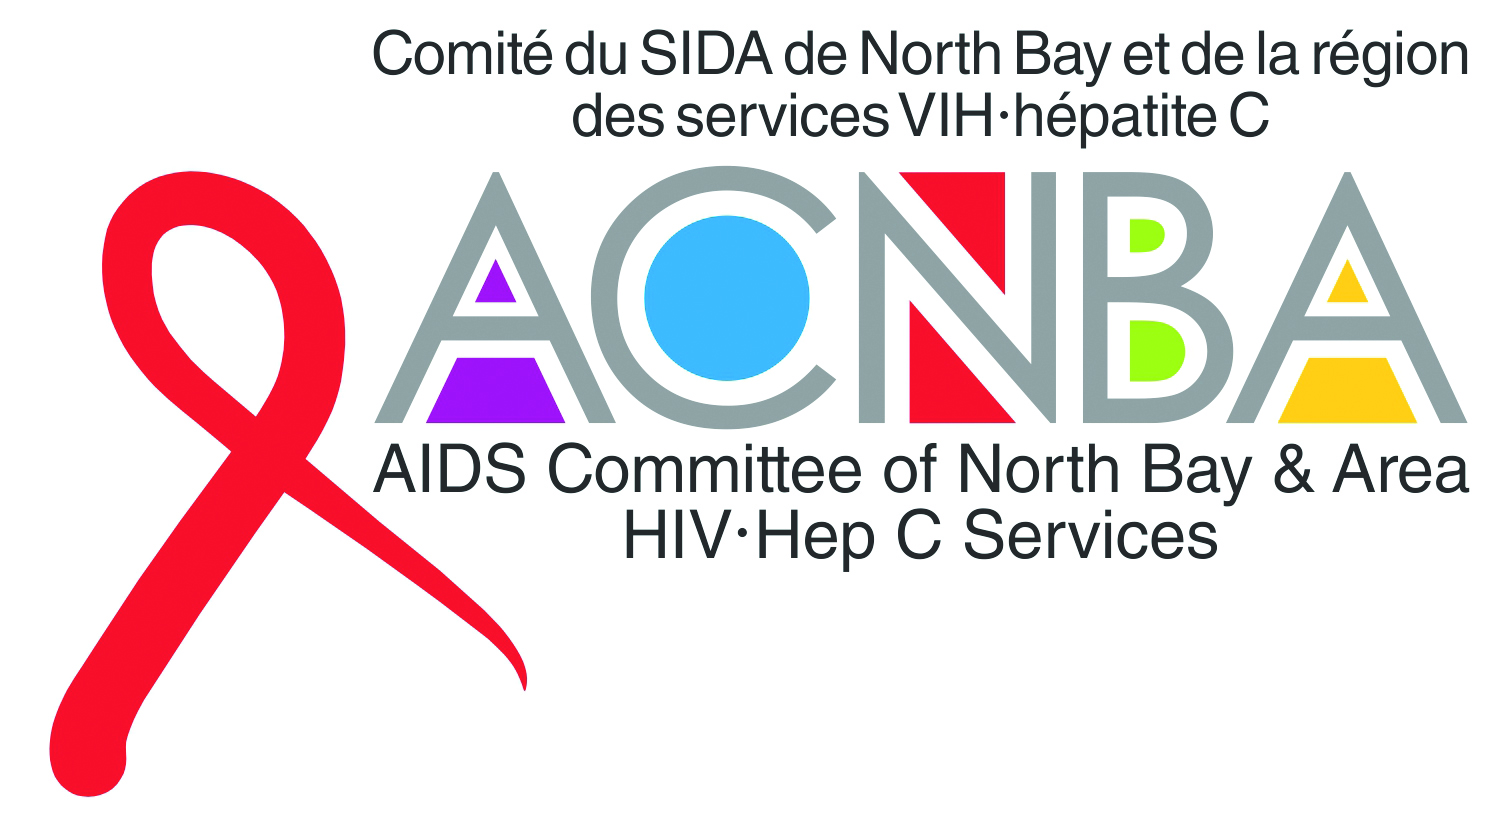 AIDS Committee North Bay